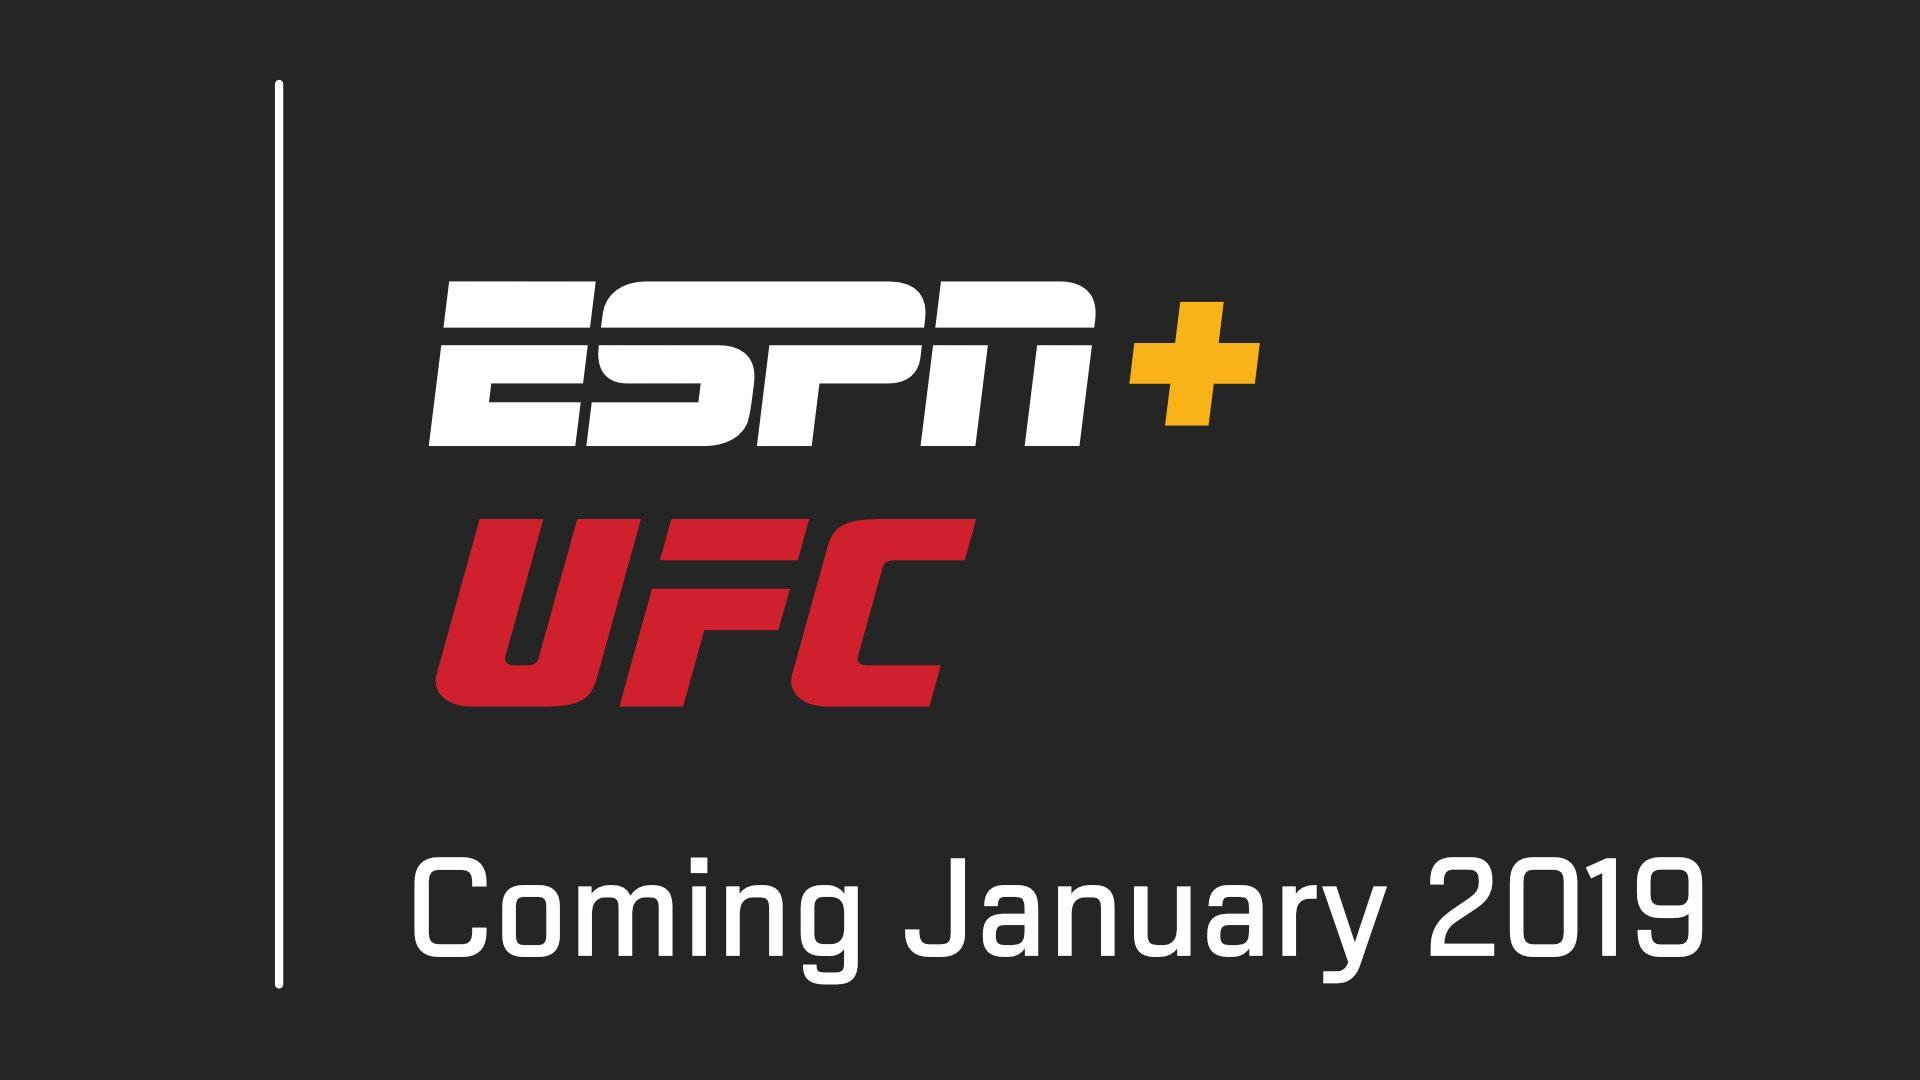 Dana White: I couldn't be more excited to partner with The Walt Disney Company and ESPN